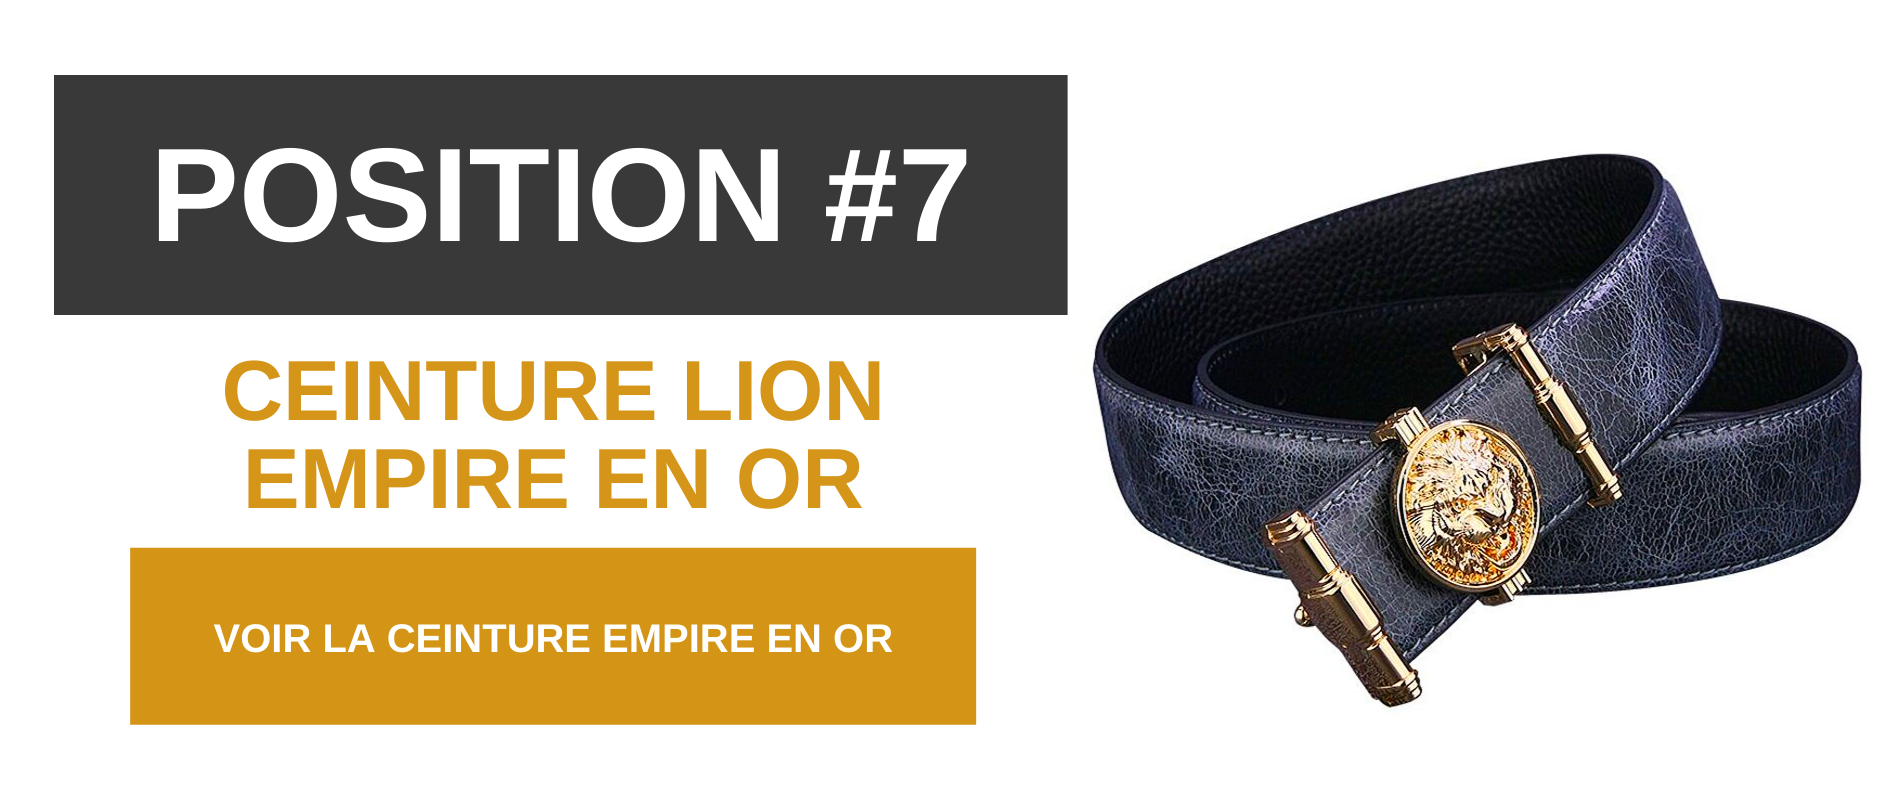 Ceinture lion empire et or.